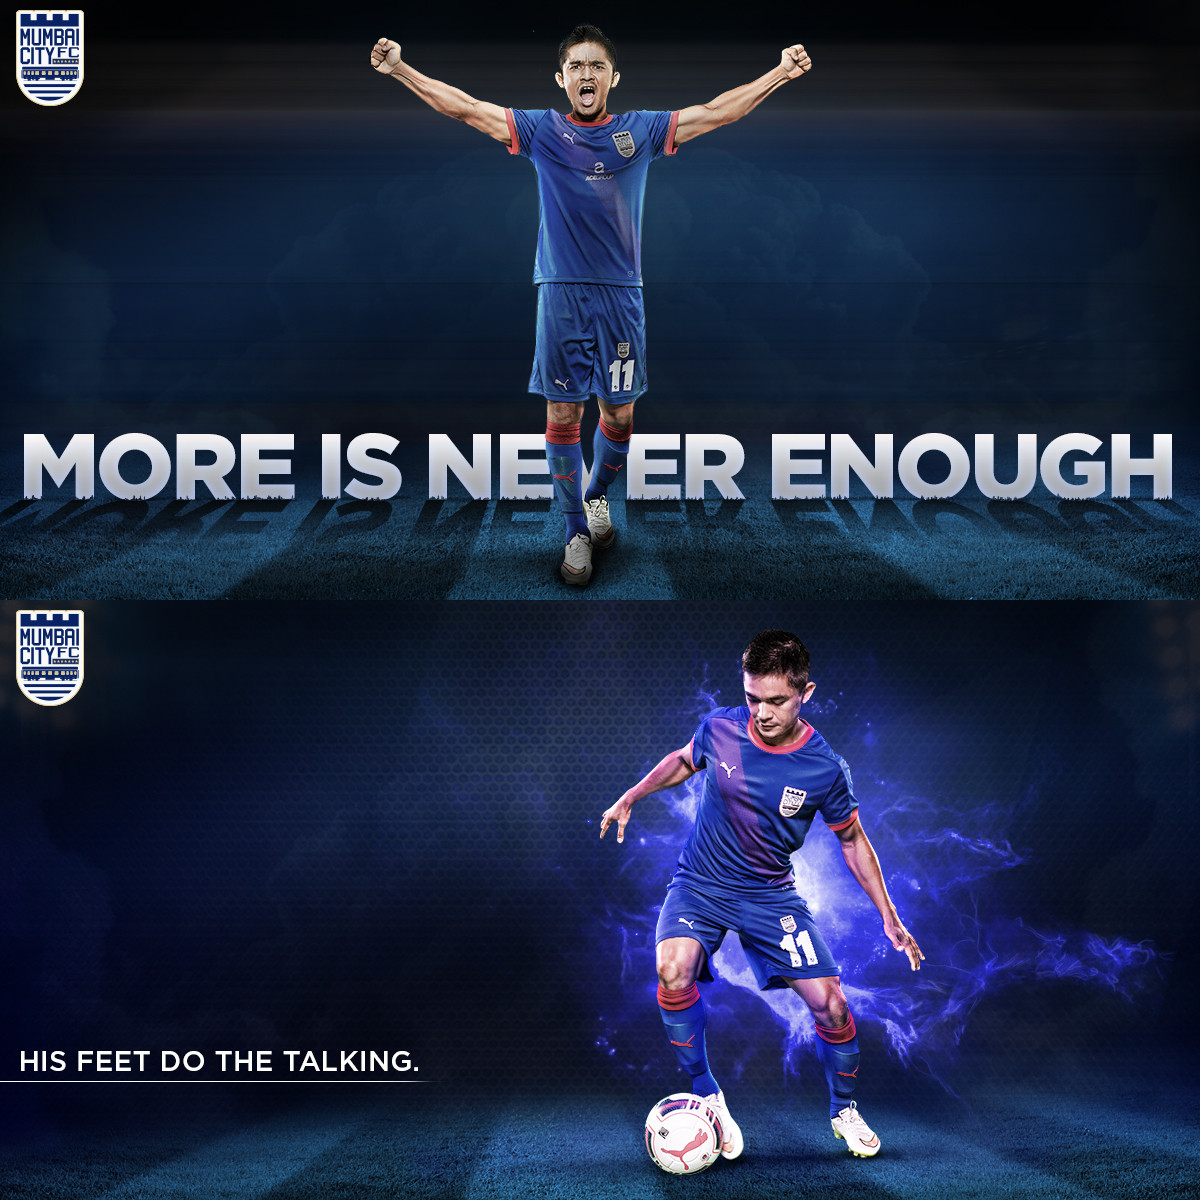 Sunil Chhetri of Mumbai City Football Club for The Glitch.